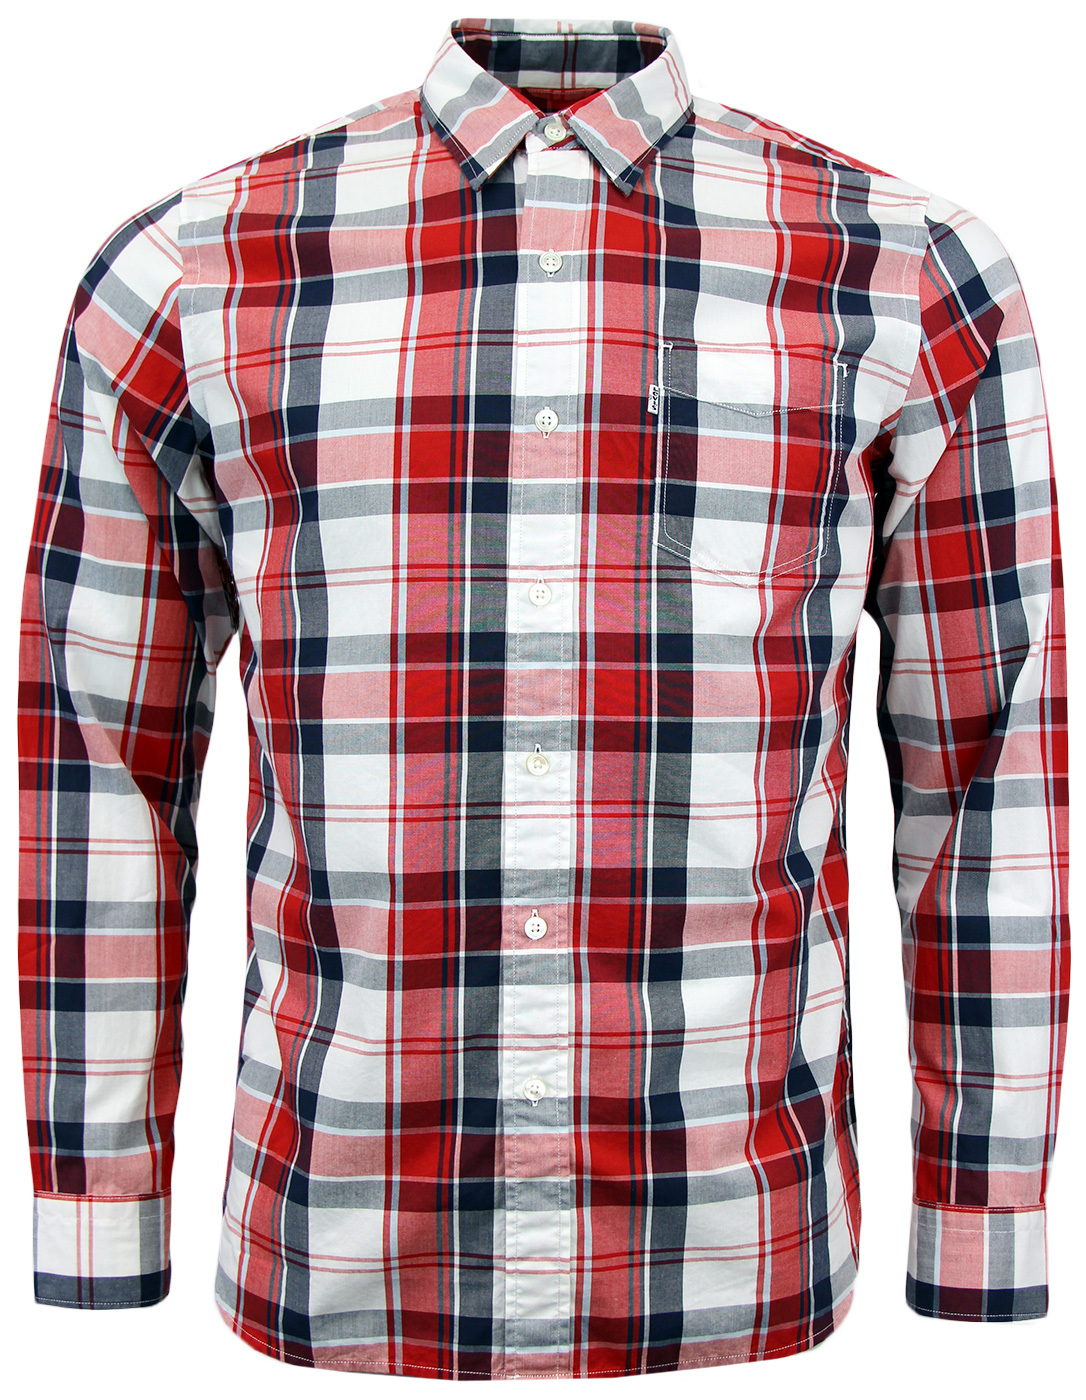 Sunset LEVI'S® Retro Mod 1960s Mens Check Shirt